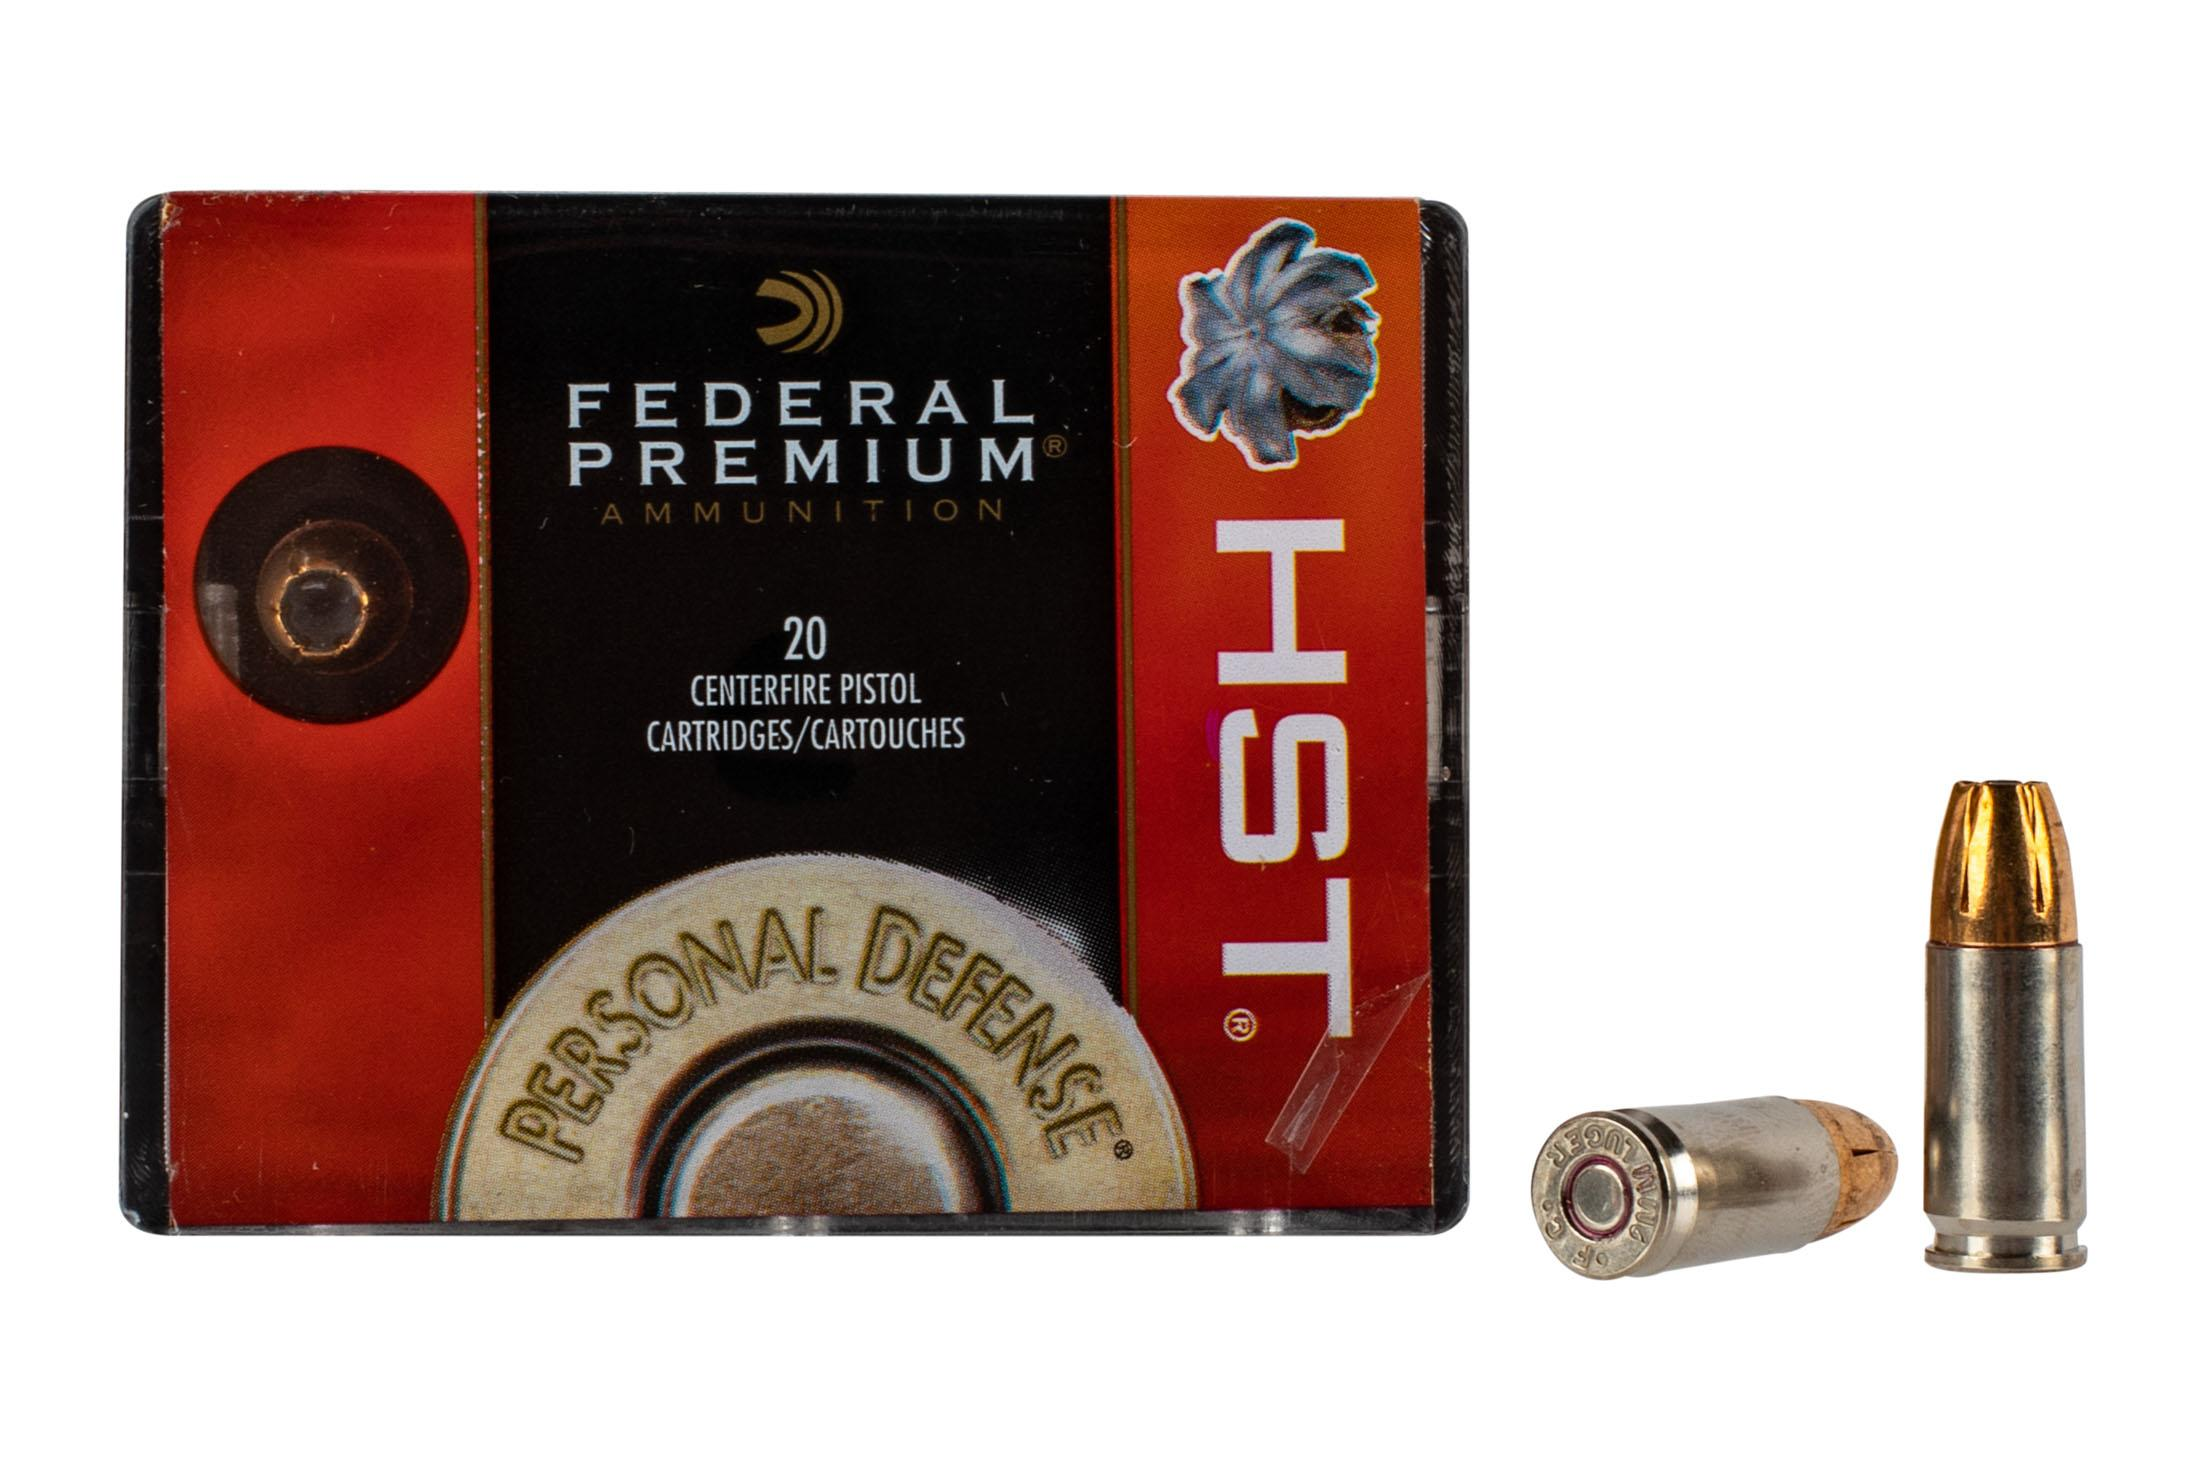 Federal HST Ammo is loaded with nickel plated brass cases